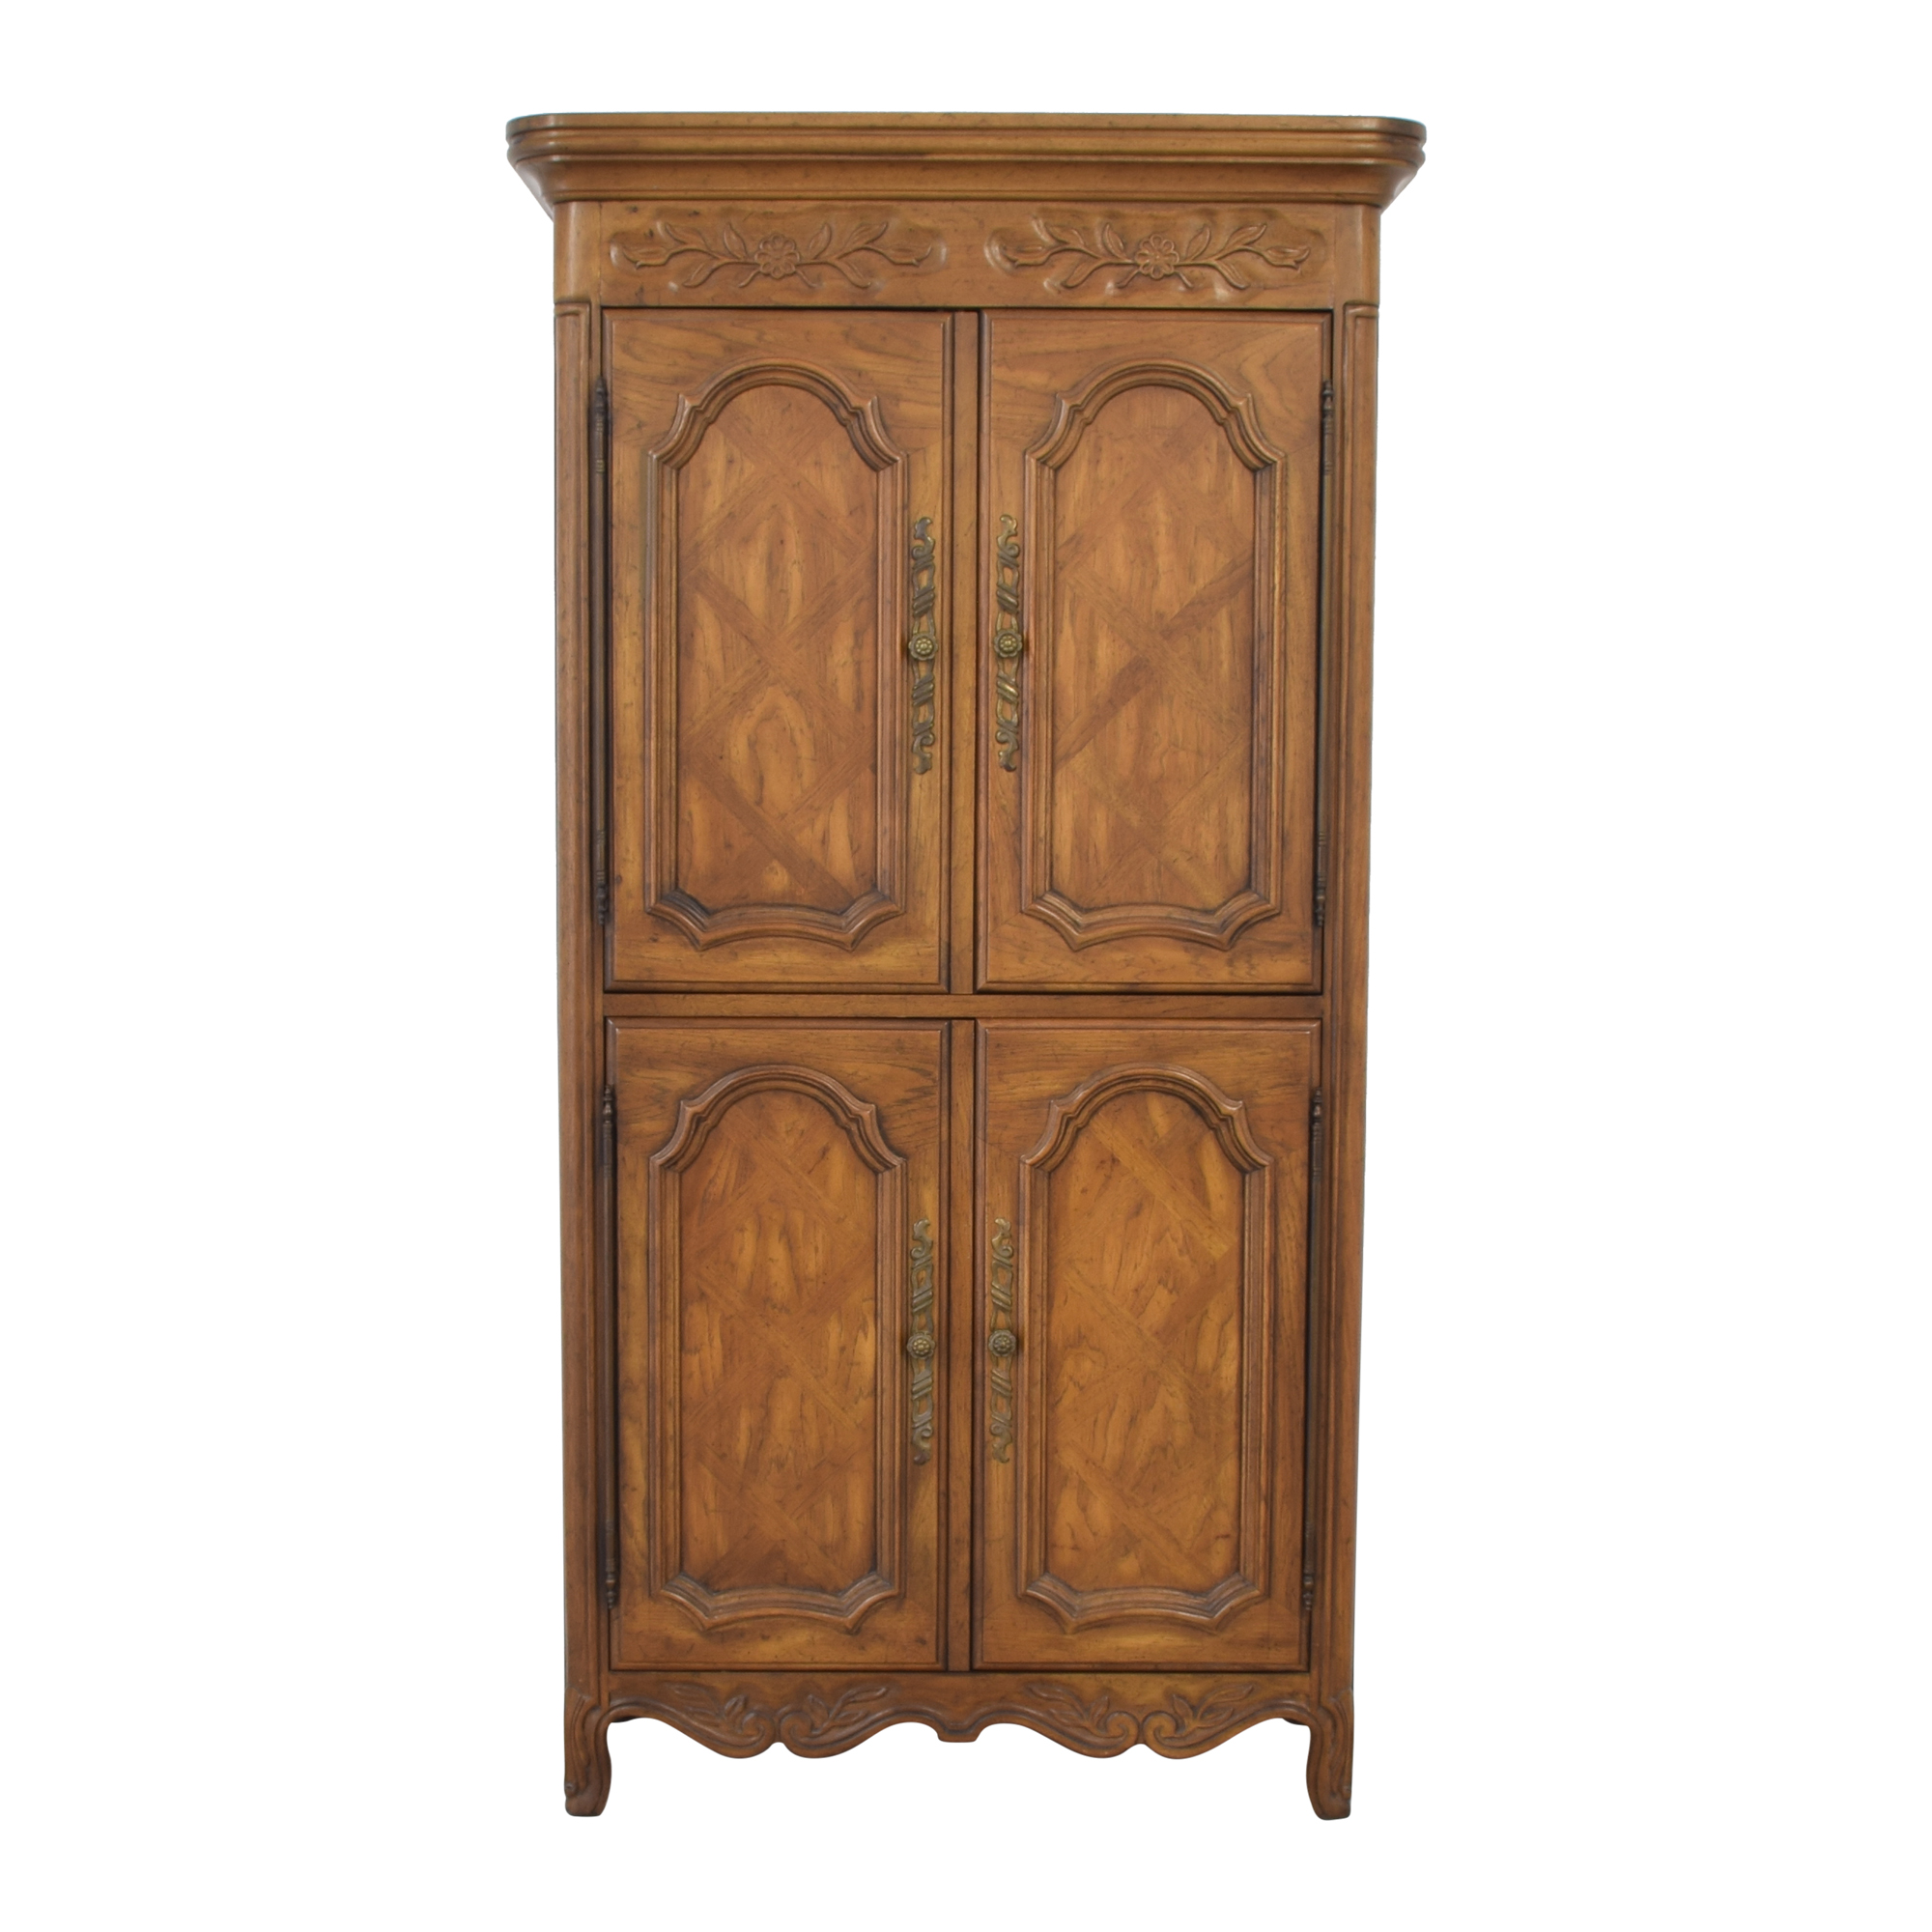 Drexel Drexel Armoire with Cabinets dimensions